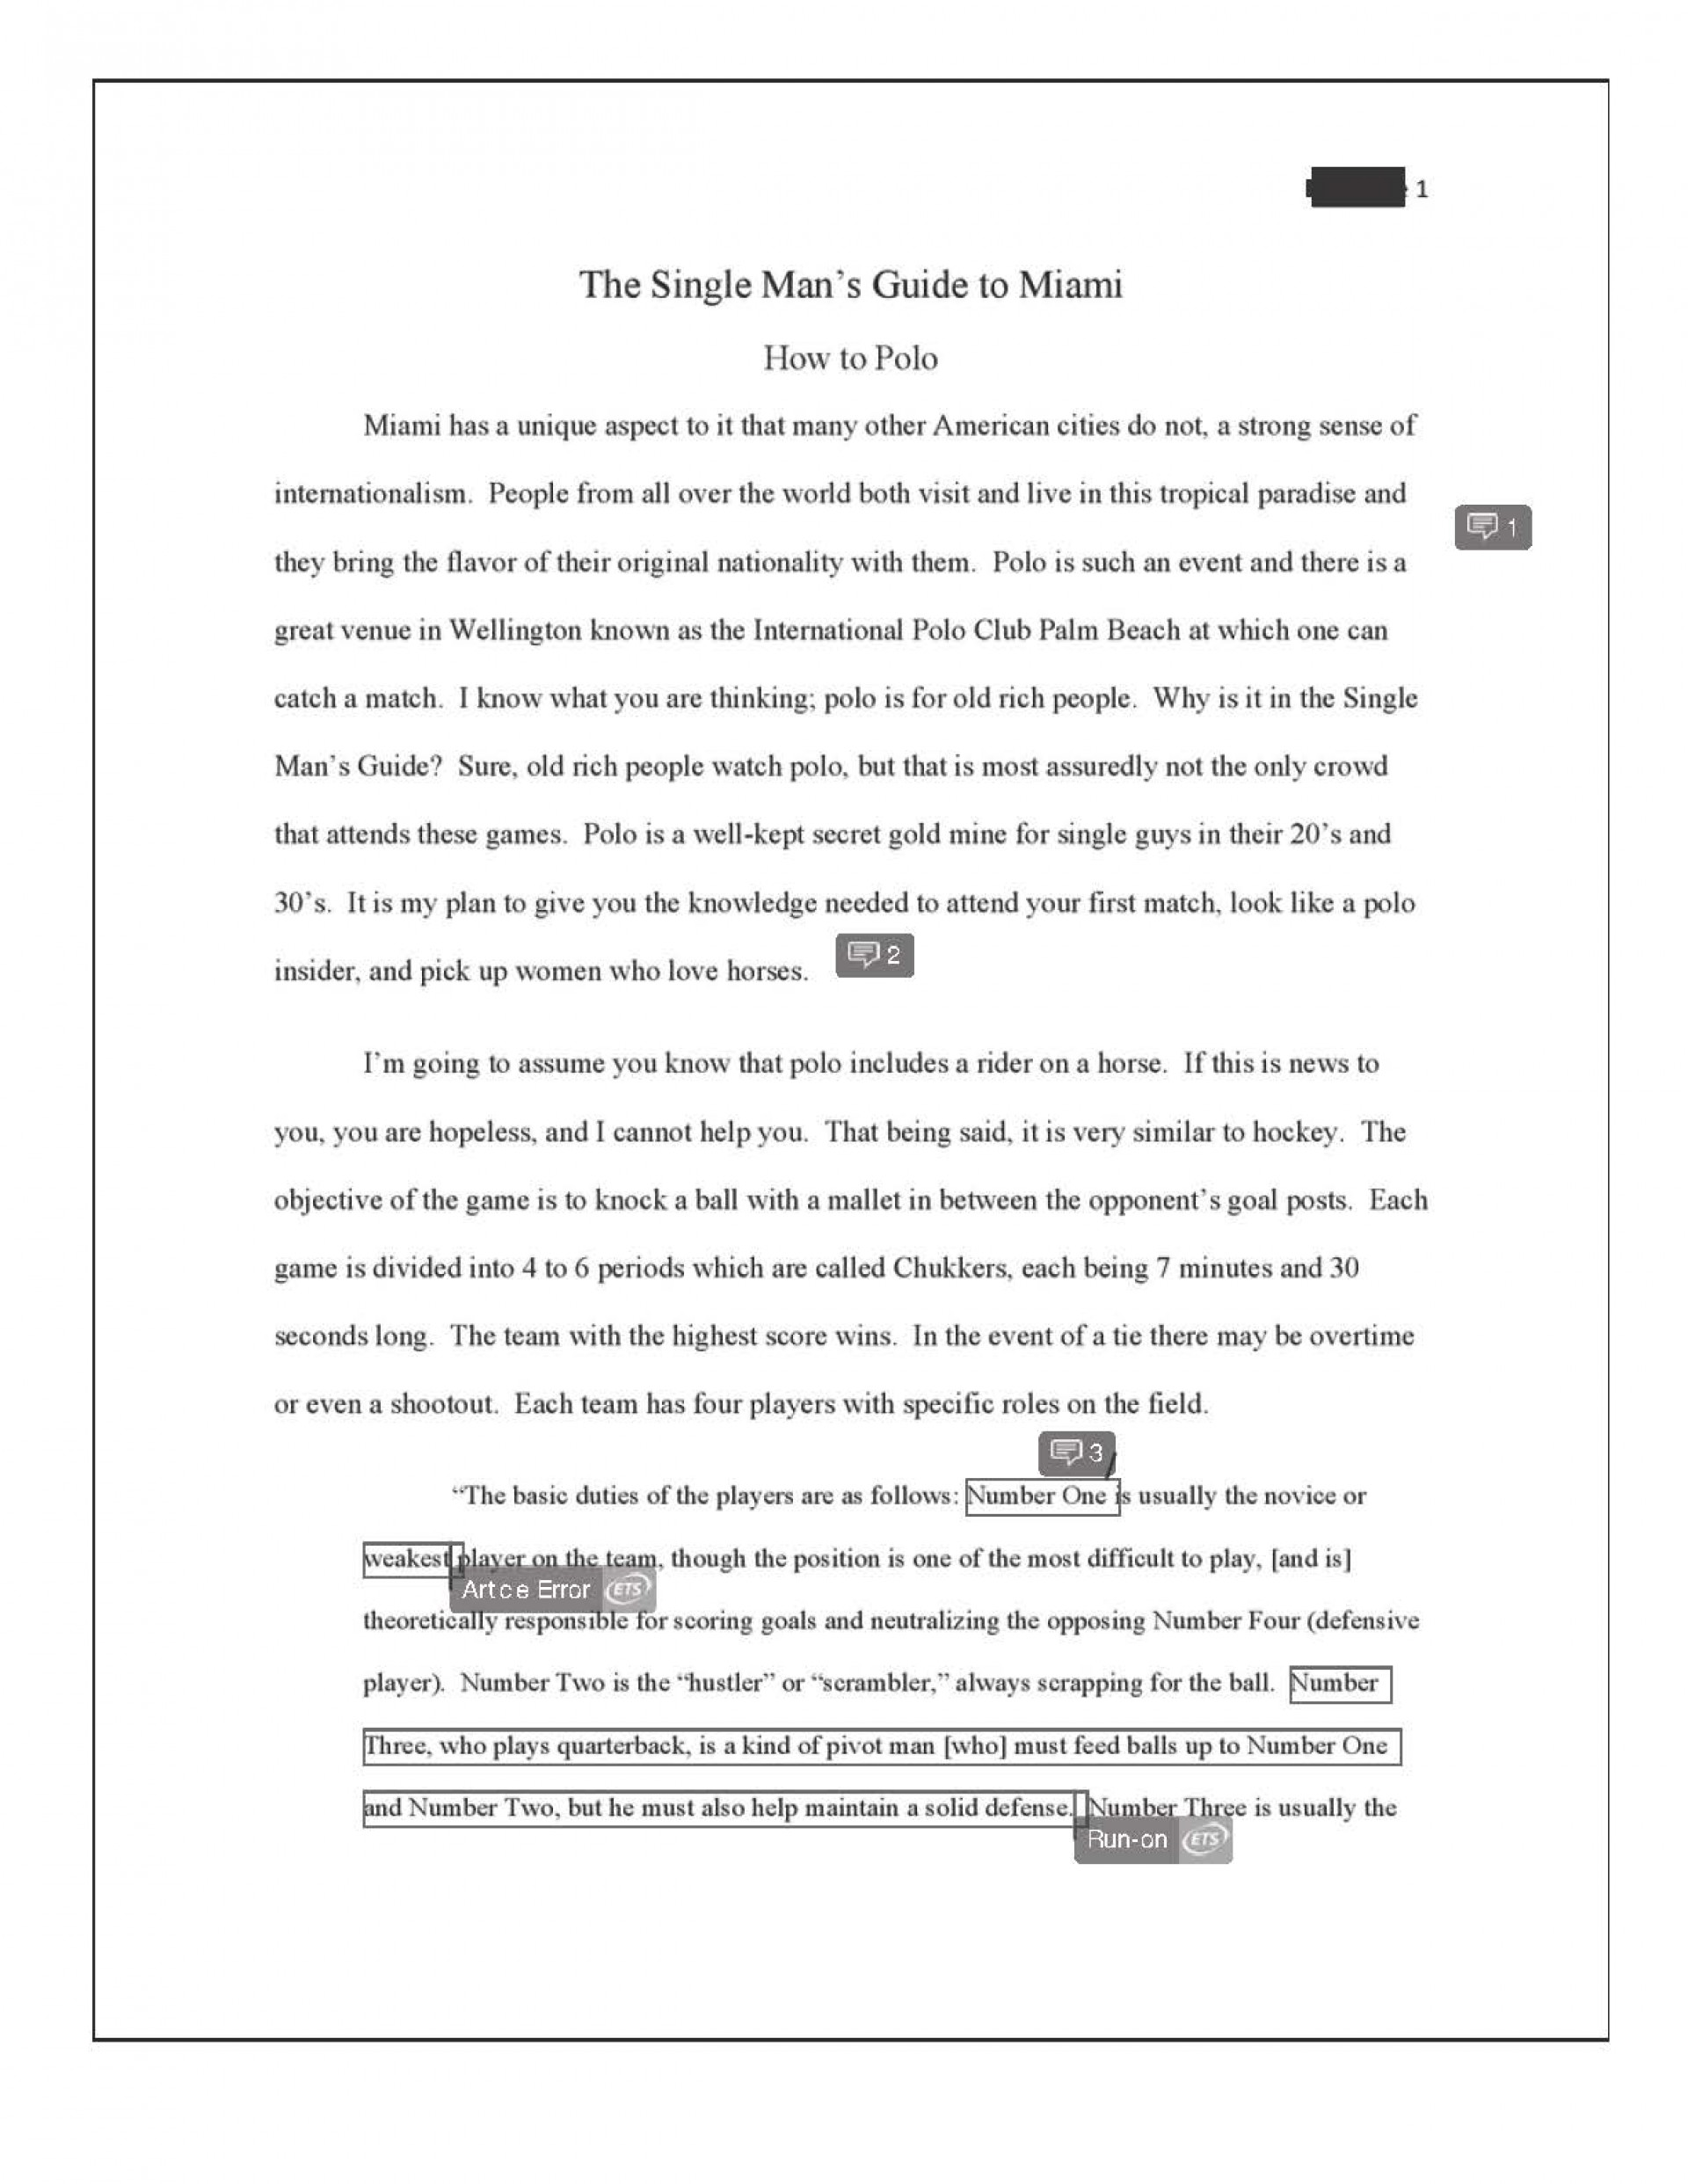 005 Informative Essay Topics Essays Sample Funny Argumentative For Middle School Final How To Polo Redacted P College Students Hilarious Good Remarkable 4th Grade Expository High 6th Graders 1920